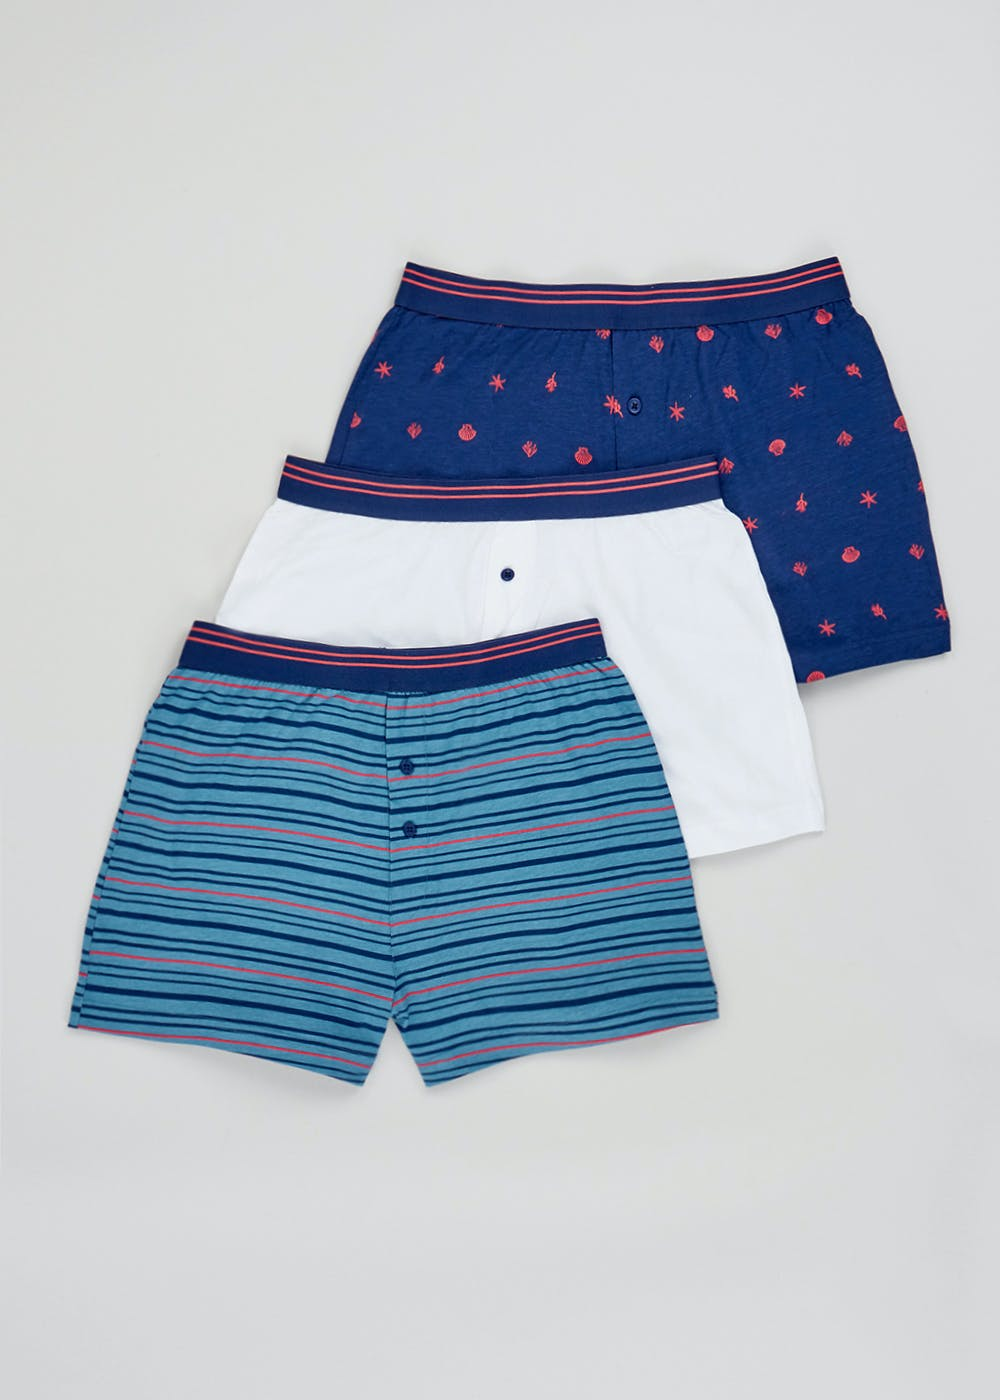 3 Pack Loose Fit Boxers – Multi